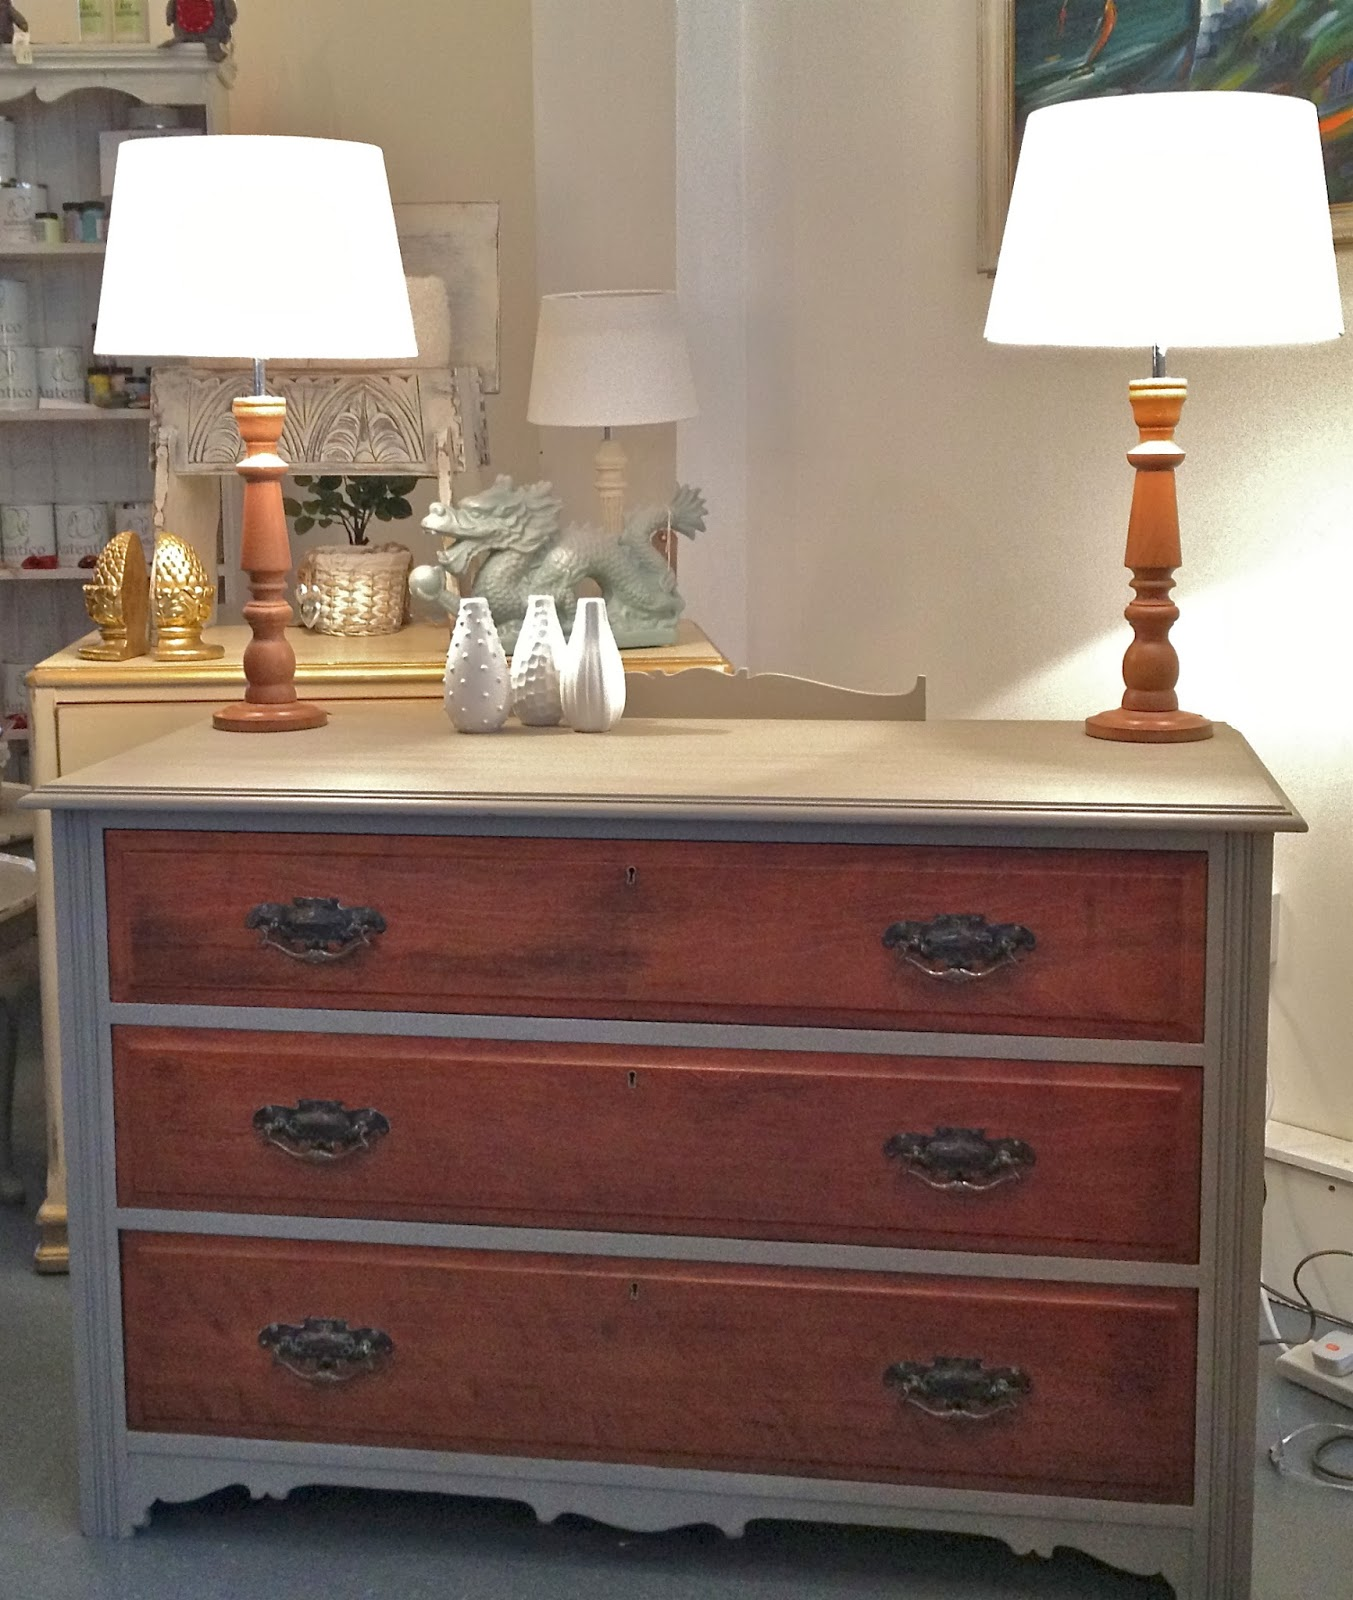 Chouchou Vintage Oak Chest Of Drawers Painted Grey With